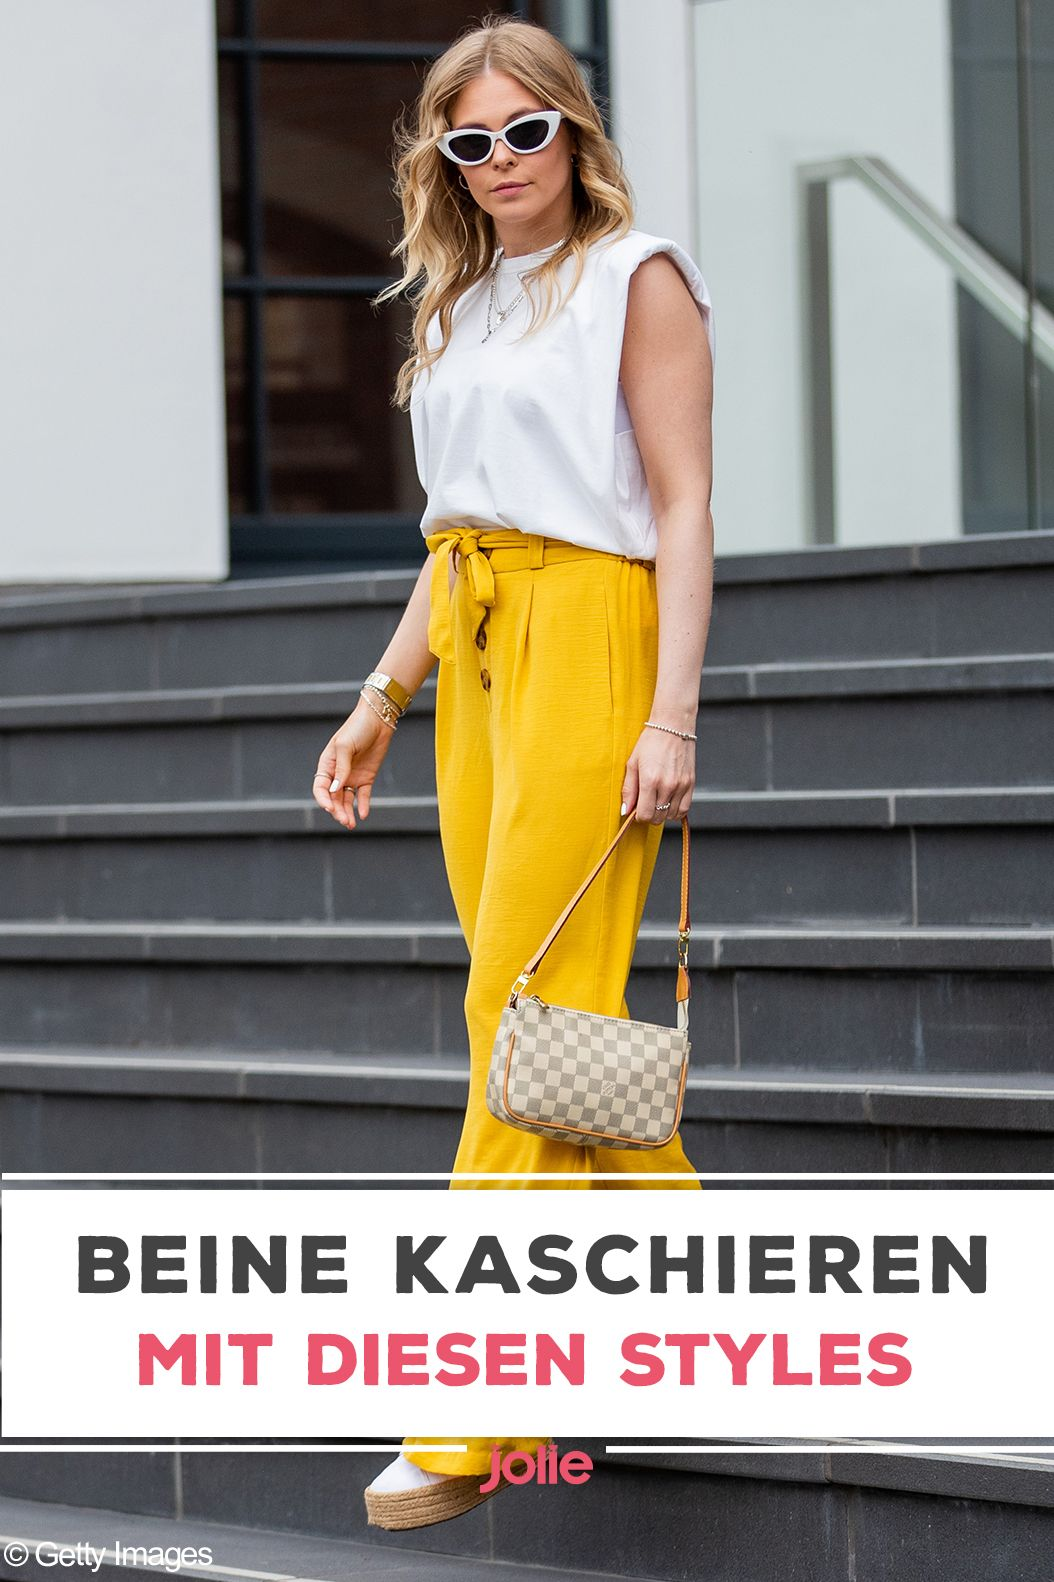 Pin auf Sommeroutfits